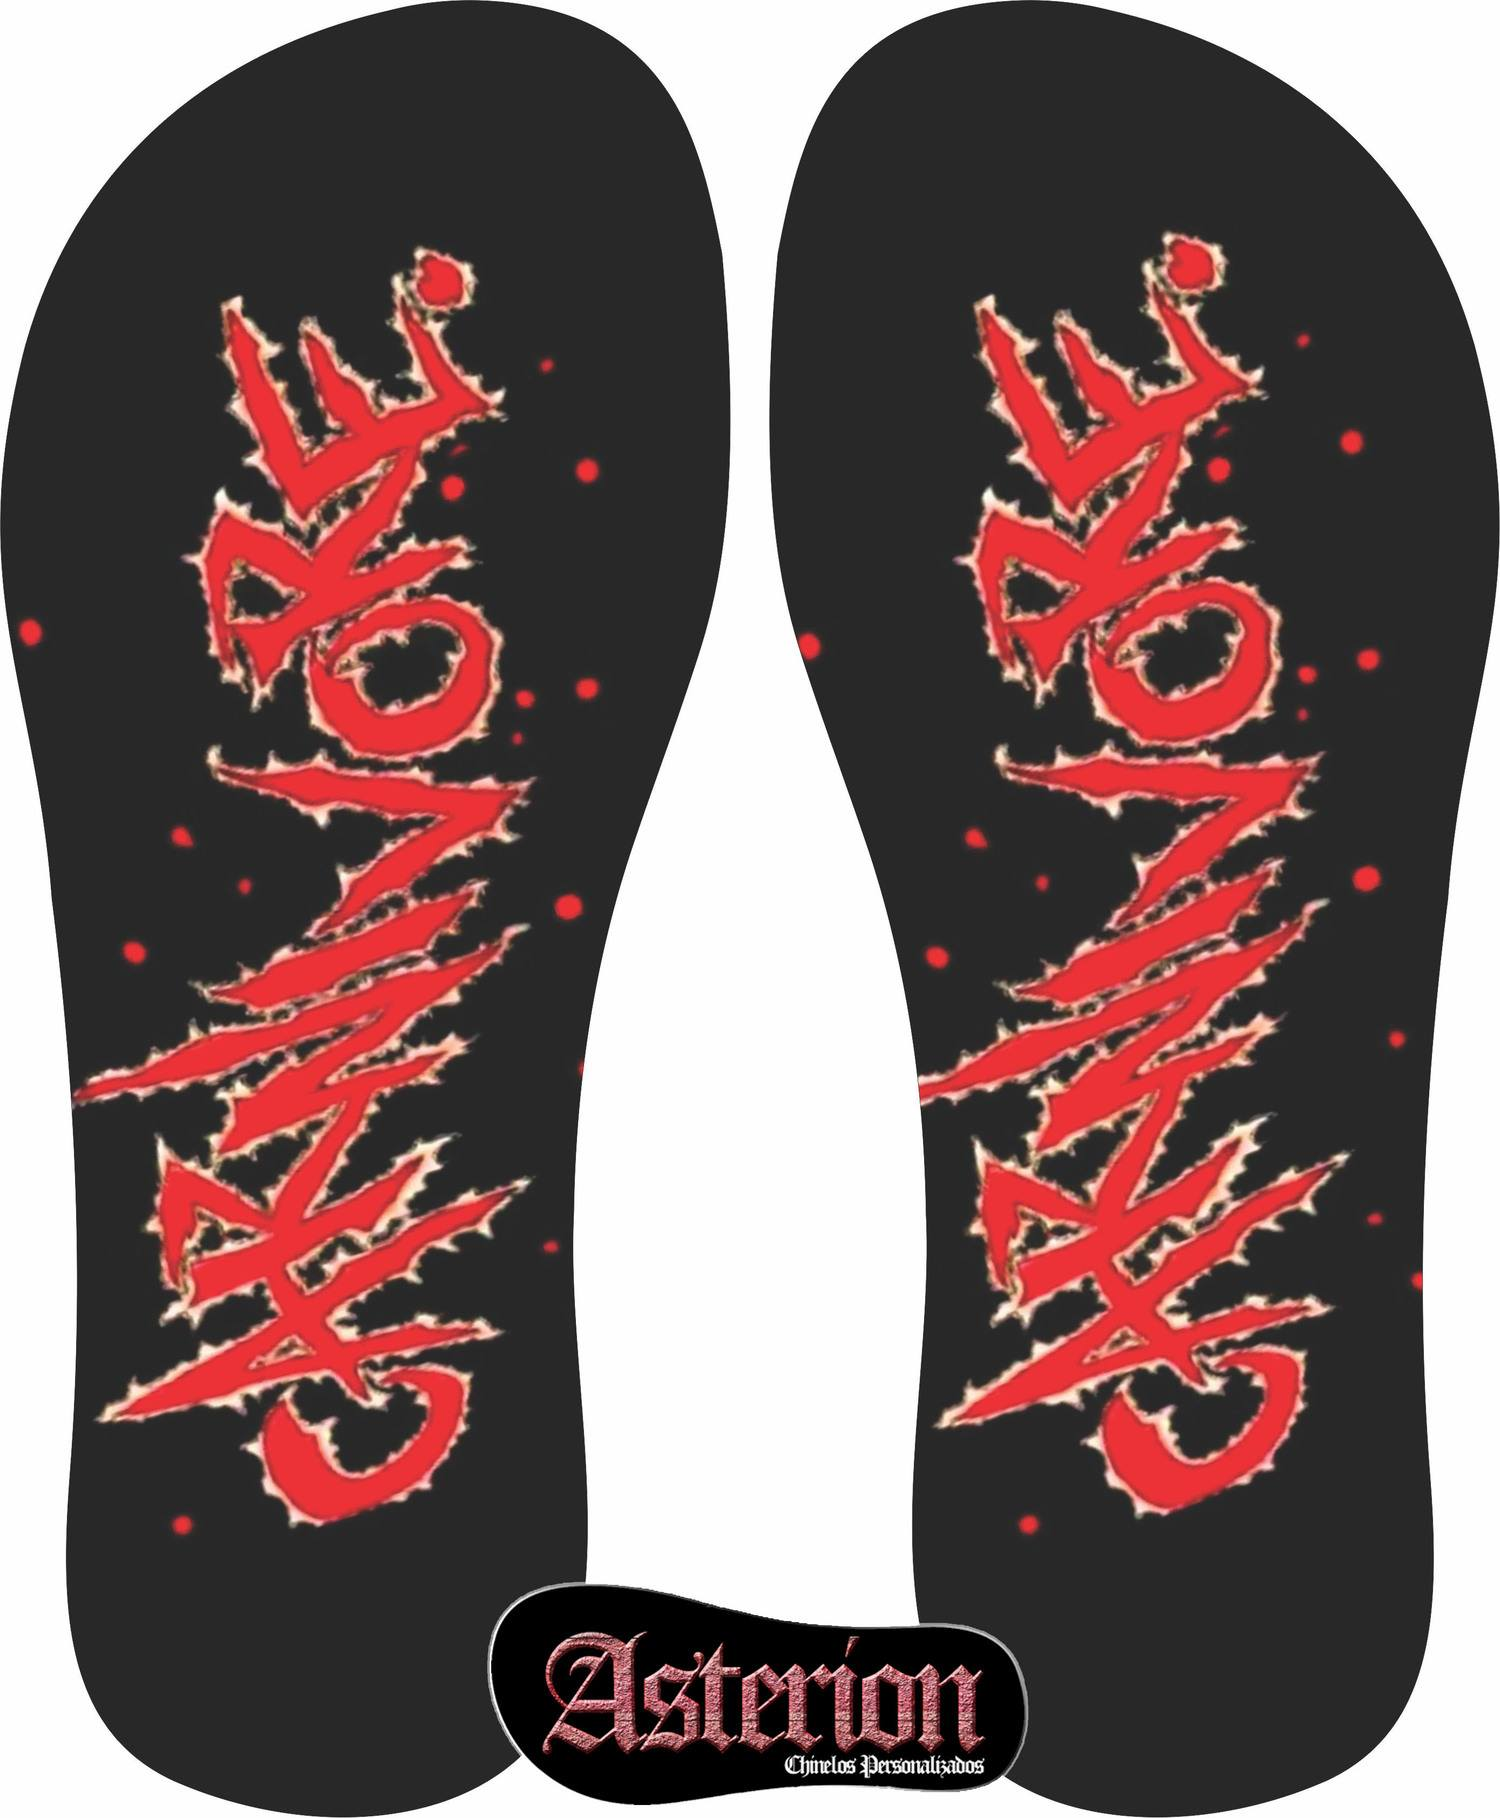 Chinelo Carnivore  – Asterion Chinelos Personalizados